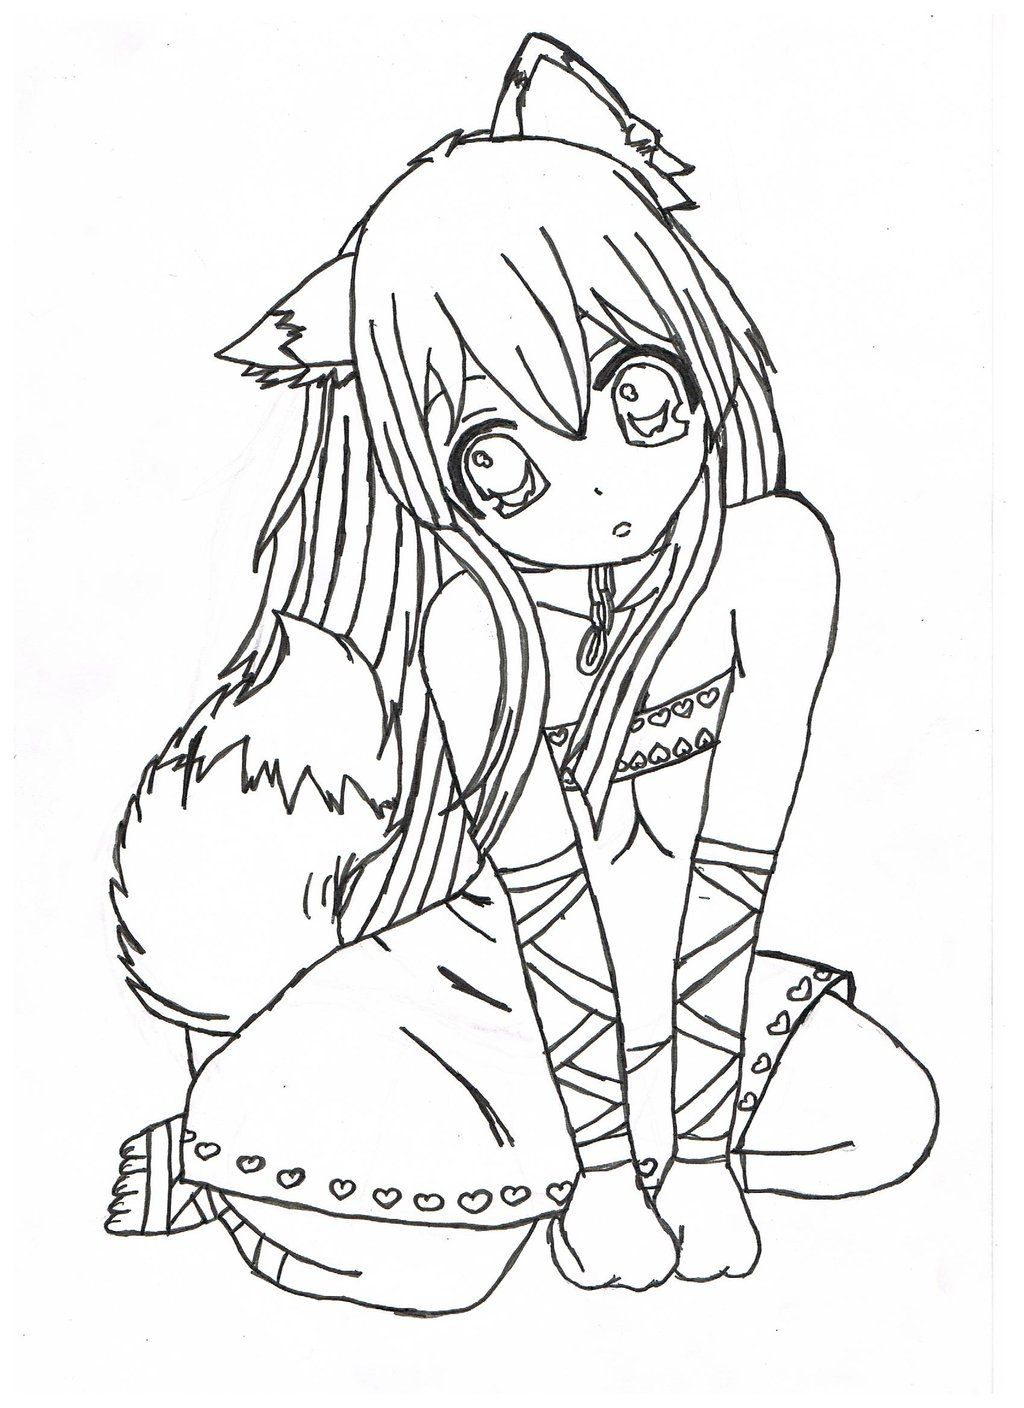 Ausmalbilder Anime Meerjungfrau : Nice Brilliant Anime Girl Coloring Pages Free Coloring Pages